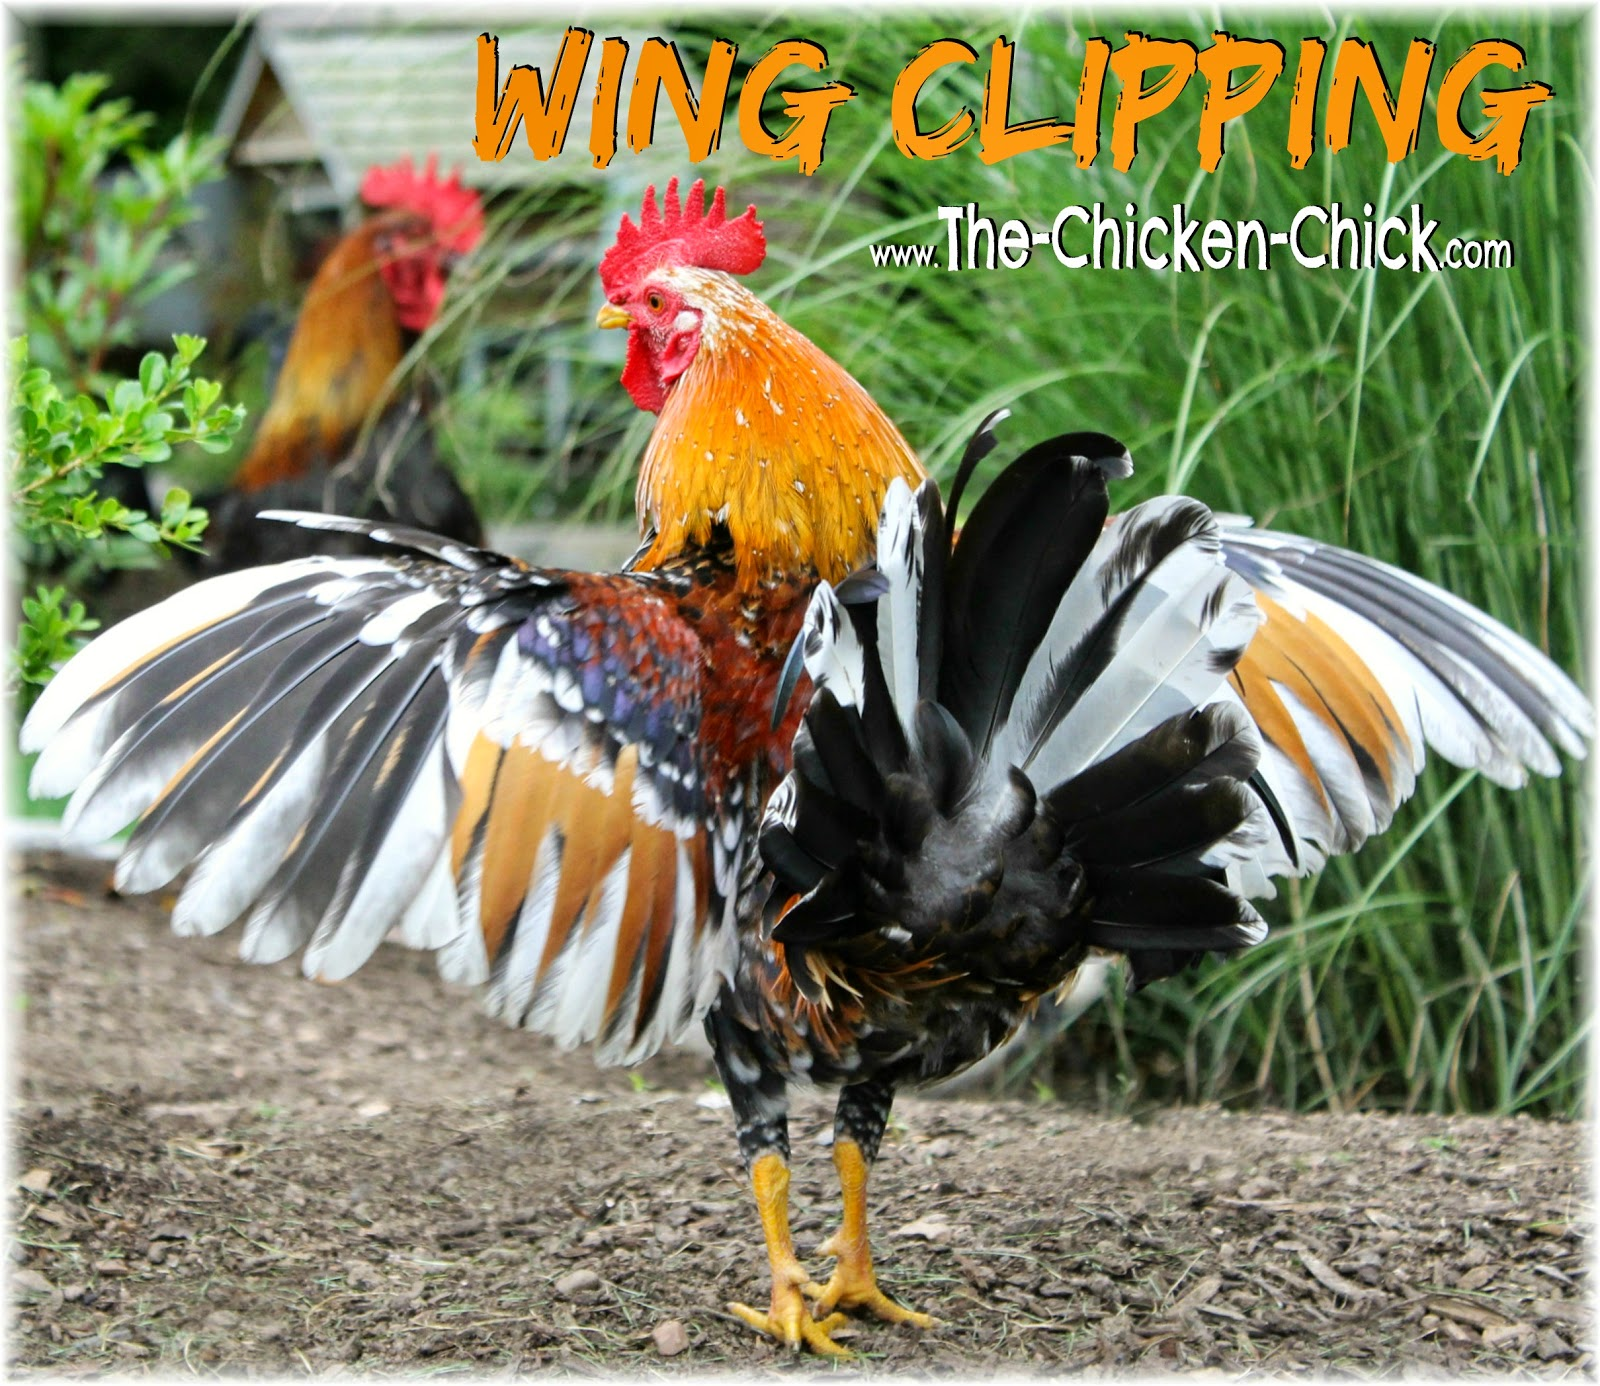 Whether to clip a chicken's wings should be carefully considered by weighing the pros and cons as the disadvantages are significant. When done properly, wing clipping is painless.